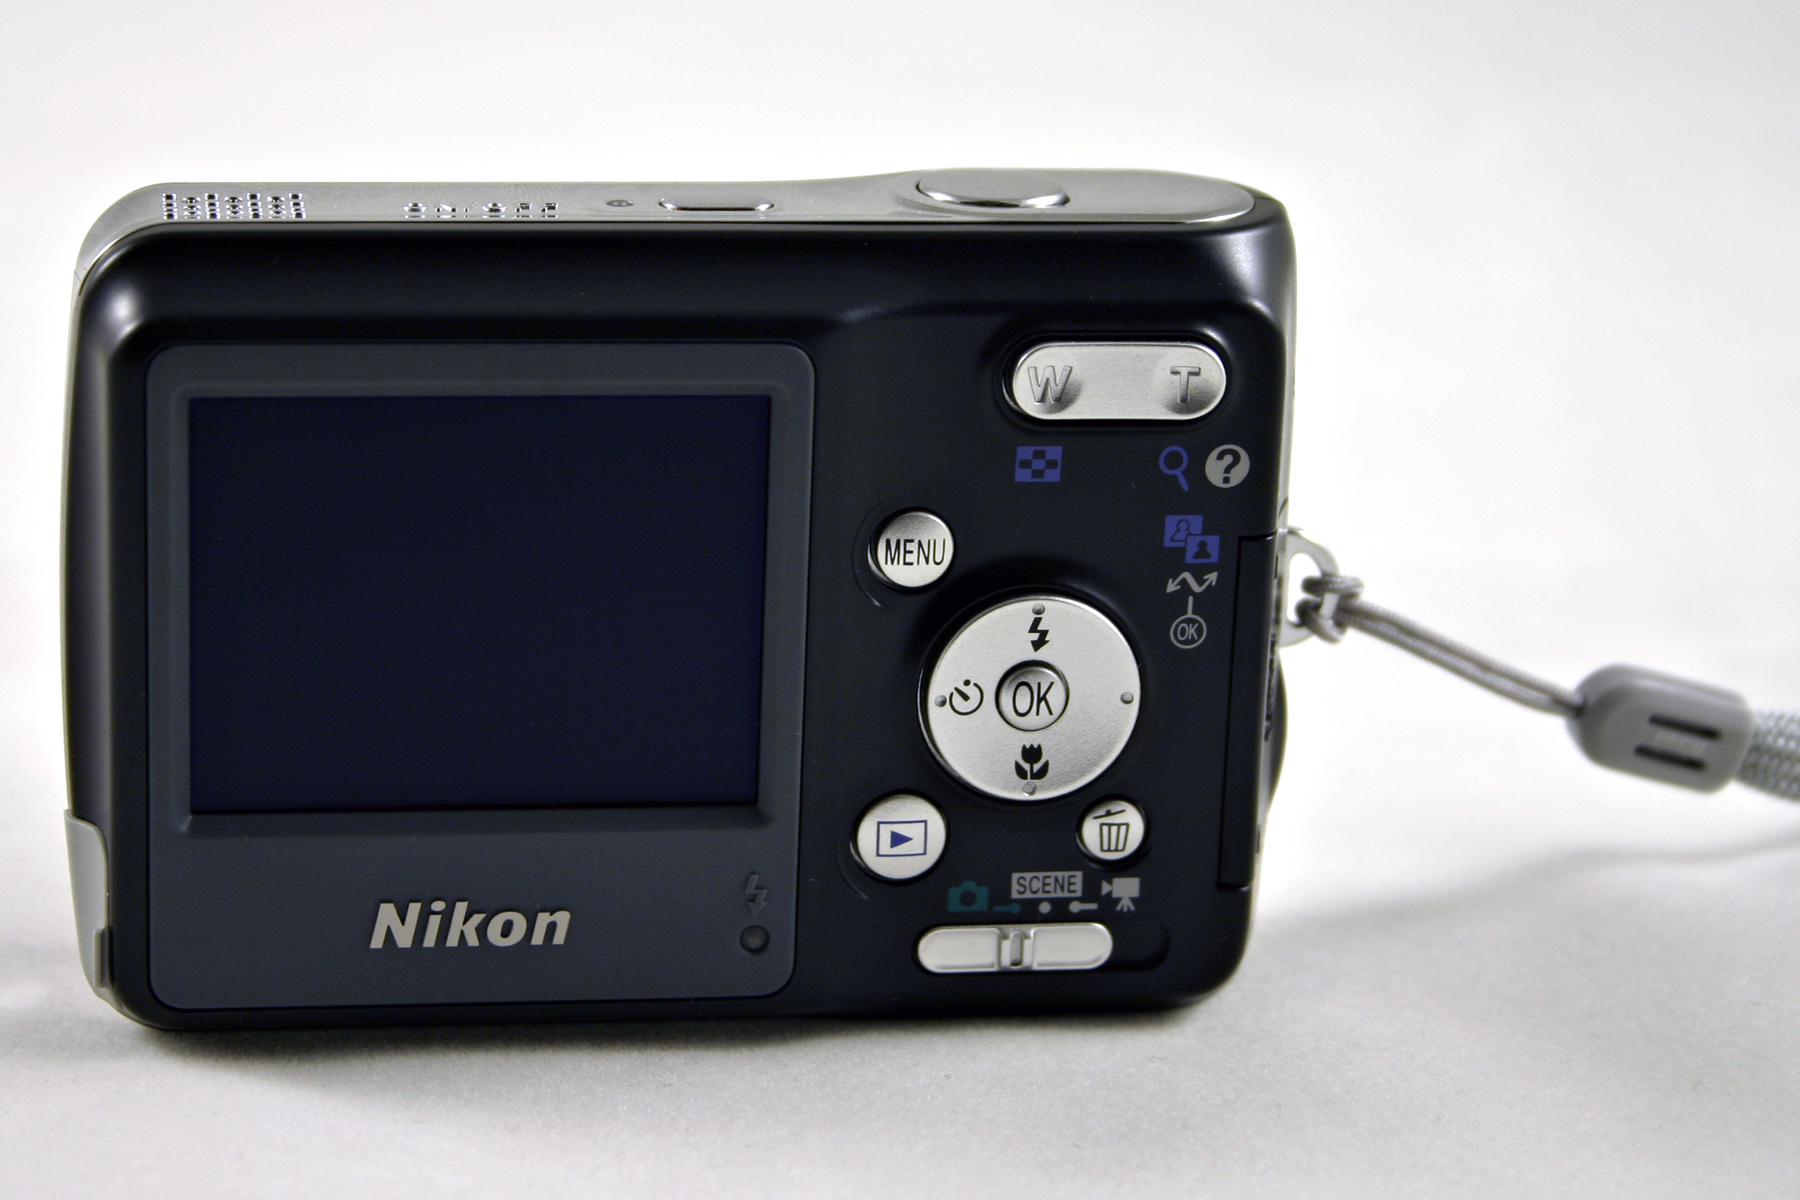 Nikon digital camera photo